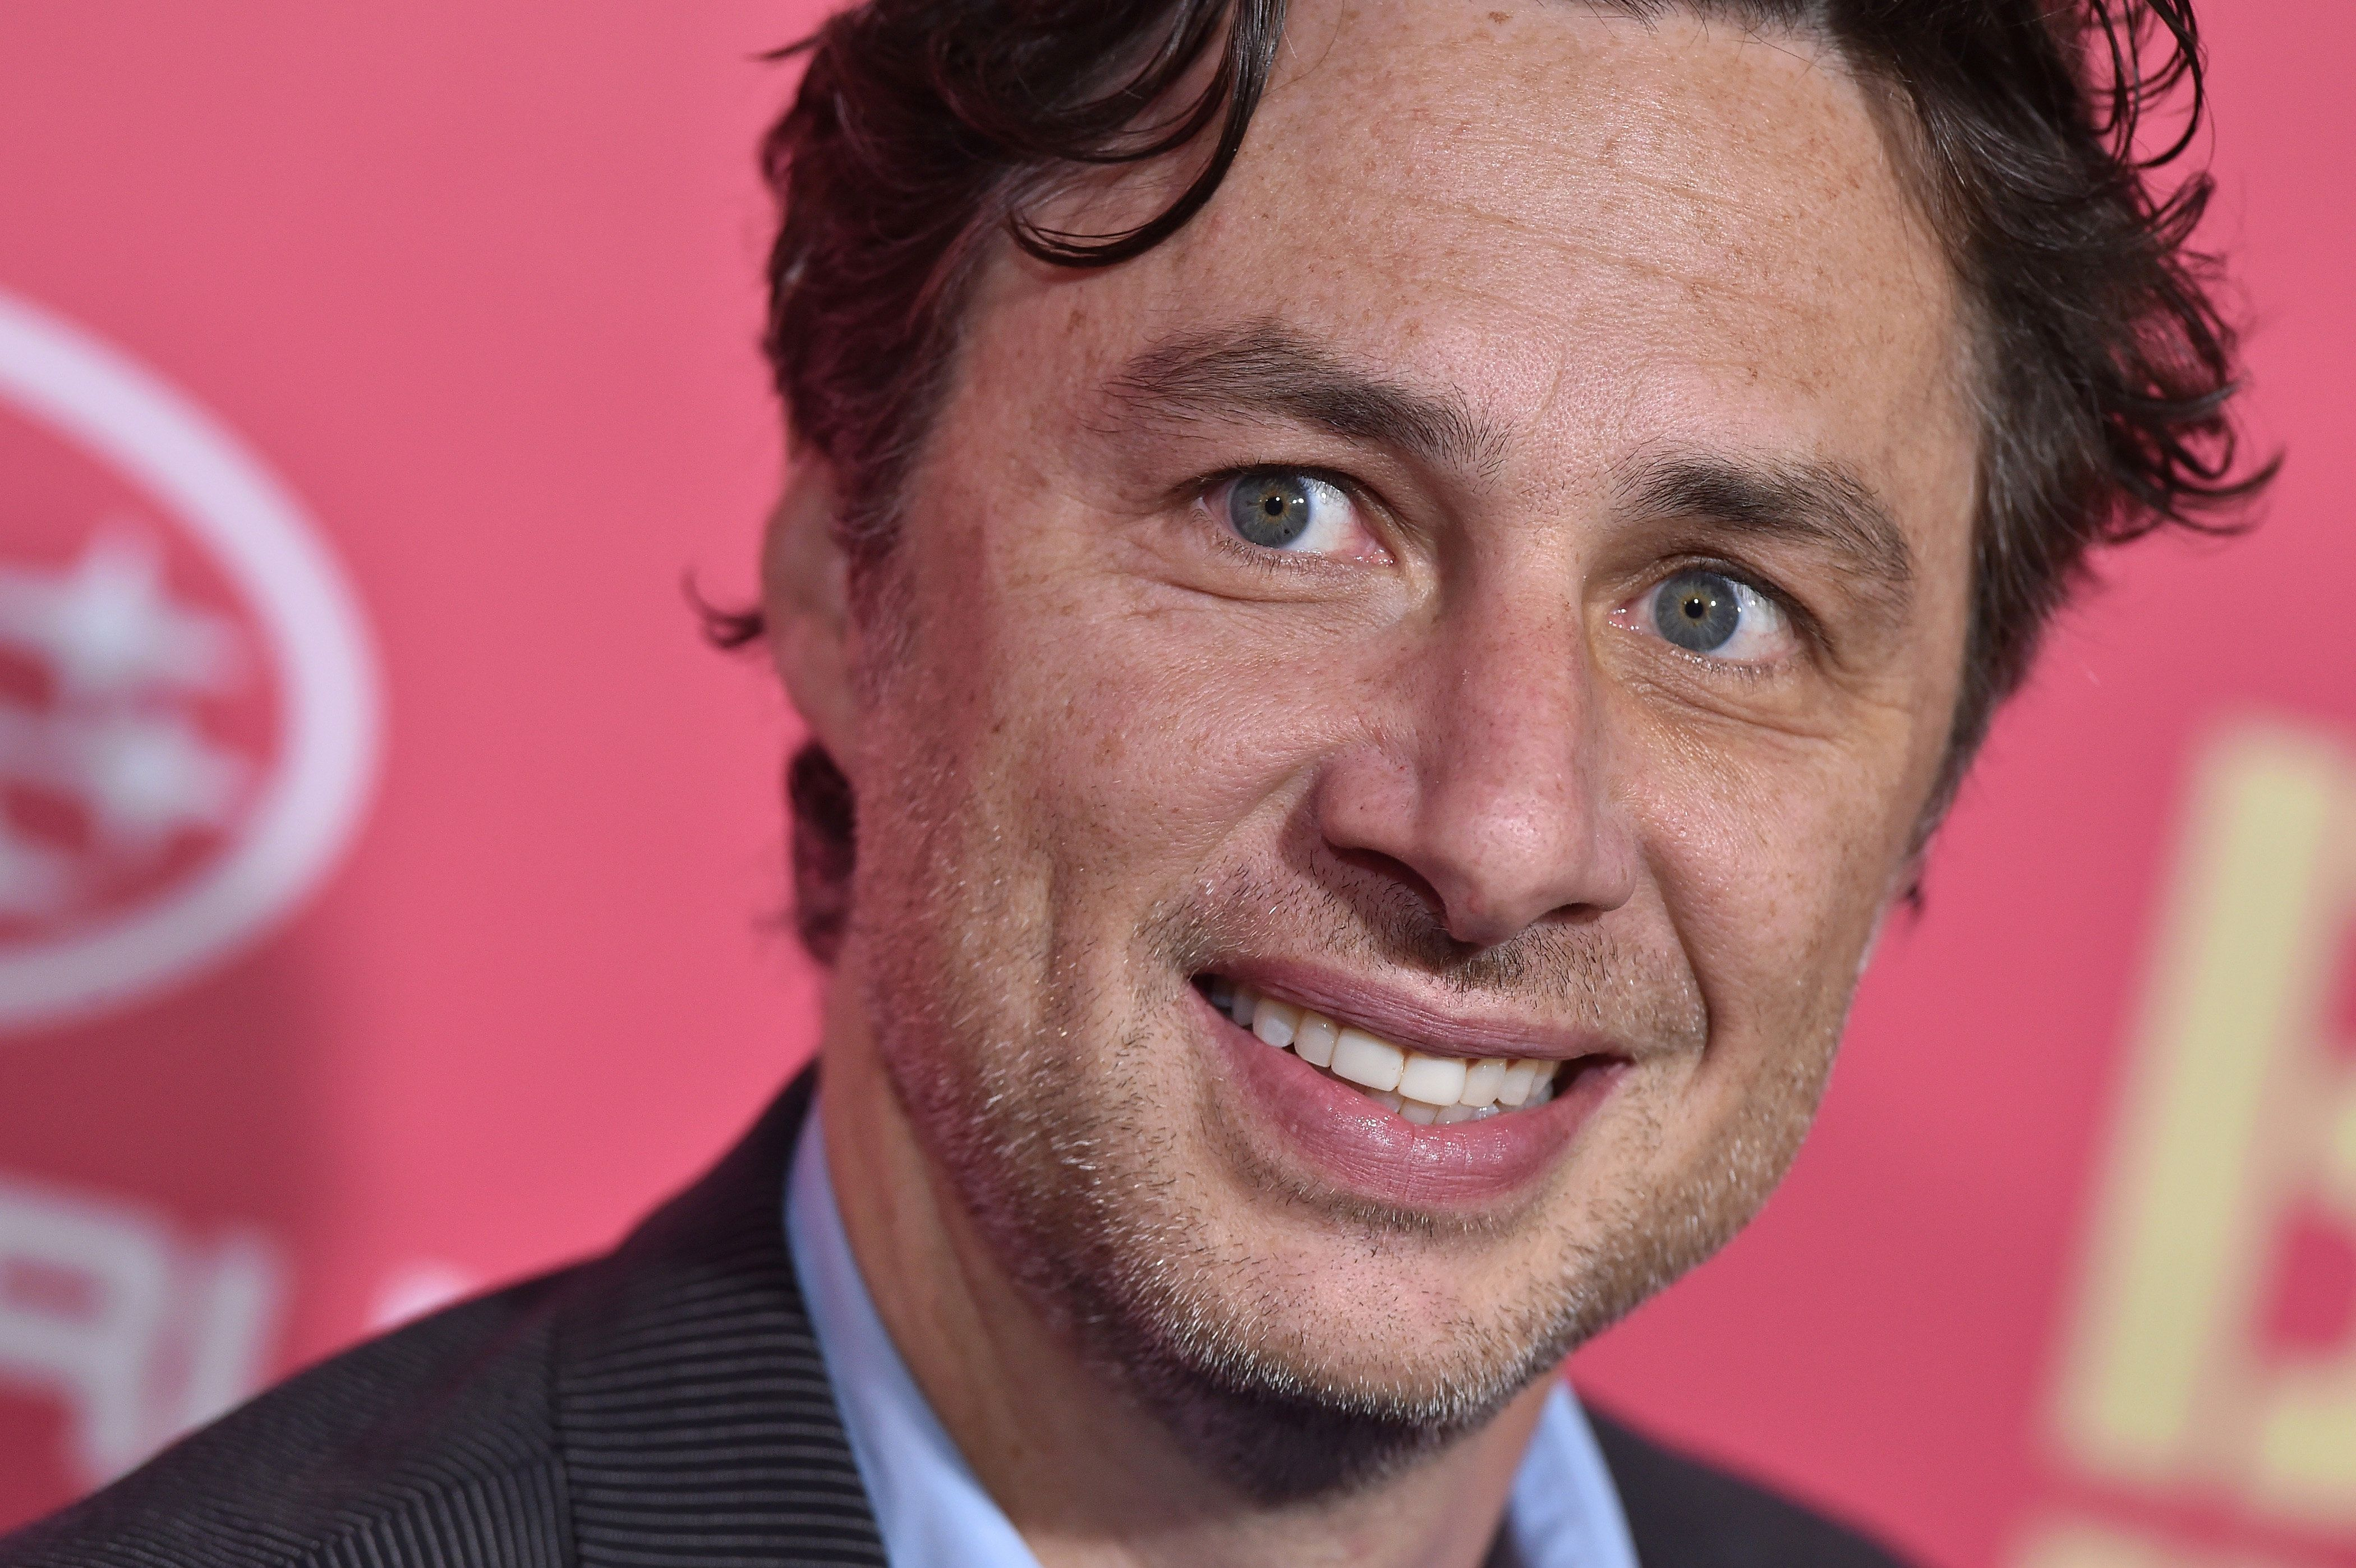 Zach Braff Discovers He's Advertising Erection Pills In Russia